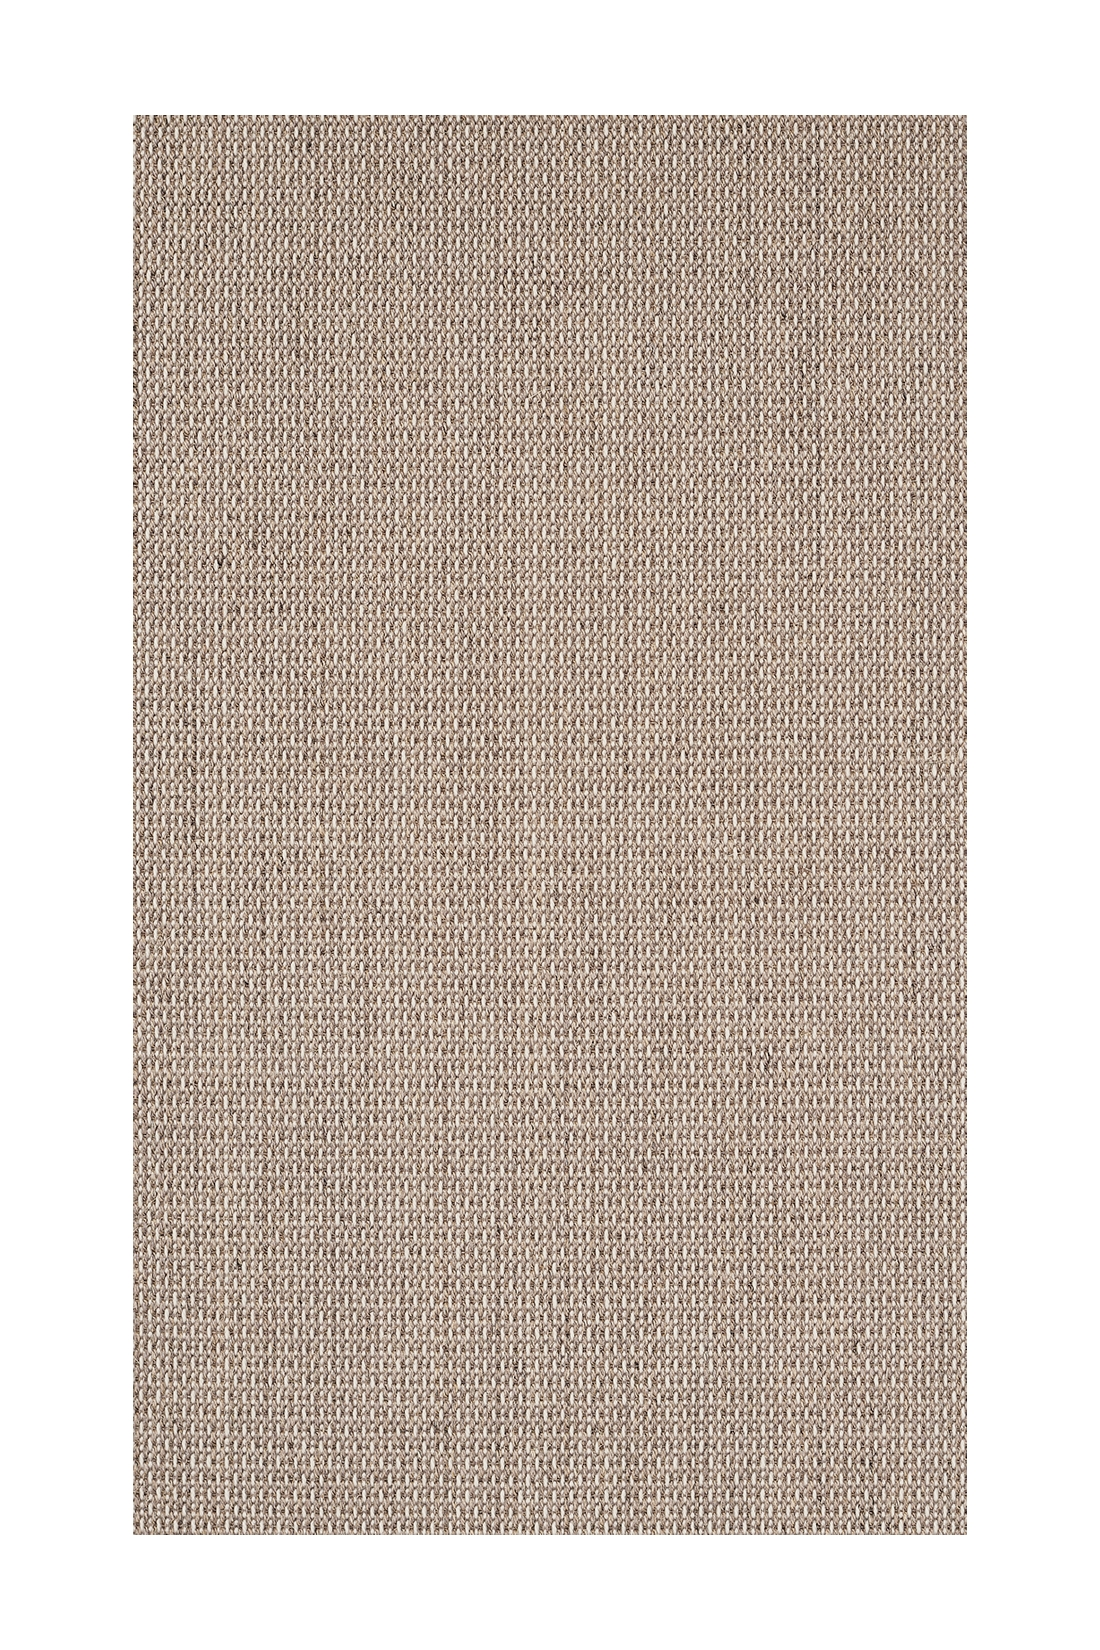 Create A Cabo Wool Sisal Rug Sisal Rugs Direct With Sissel Rugs (Image 5 of 15)